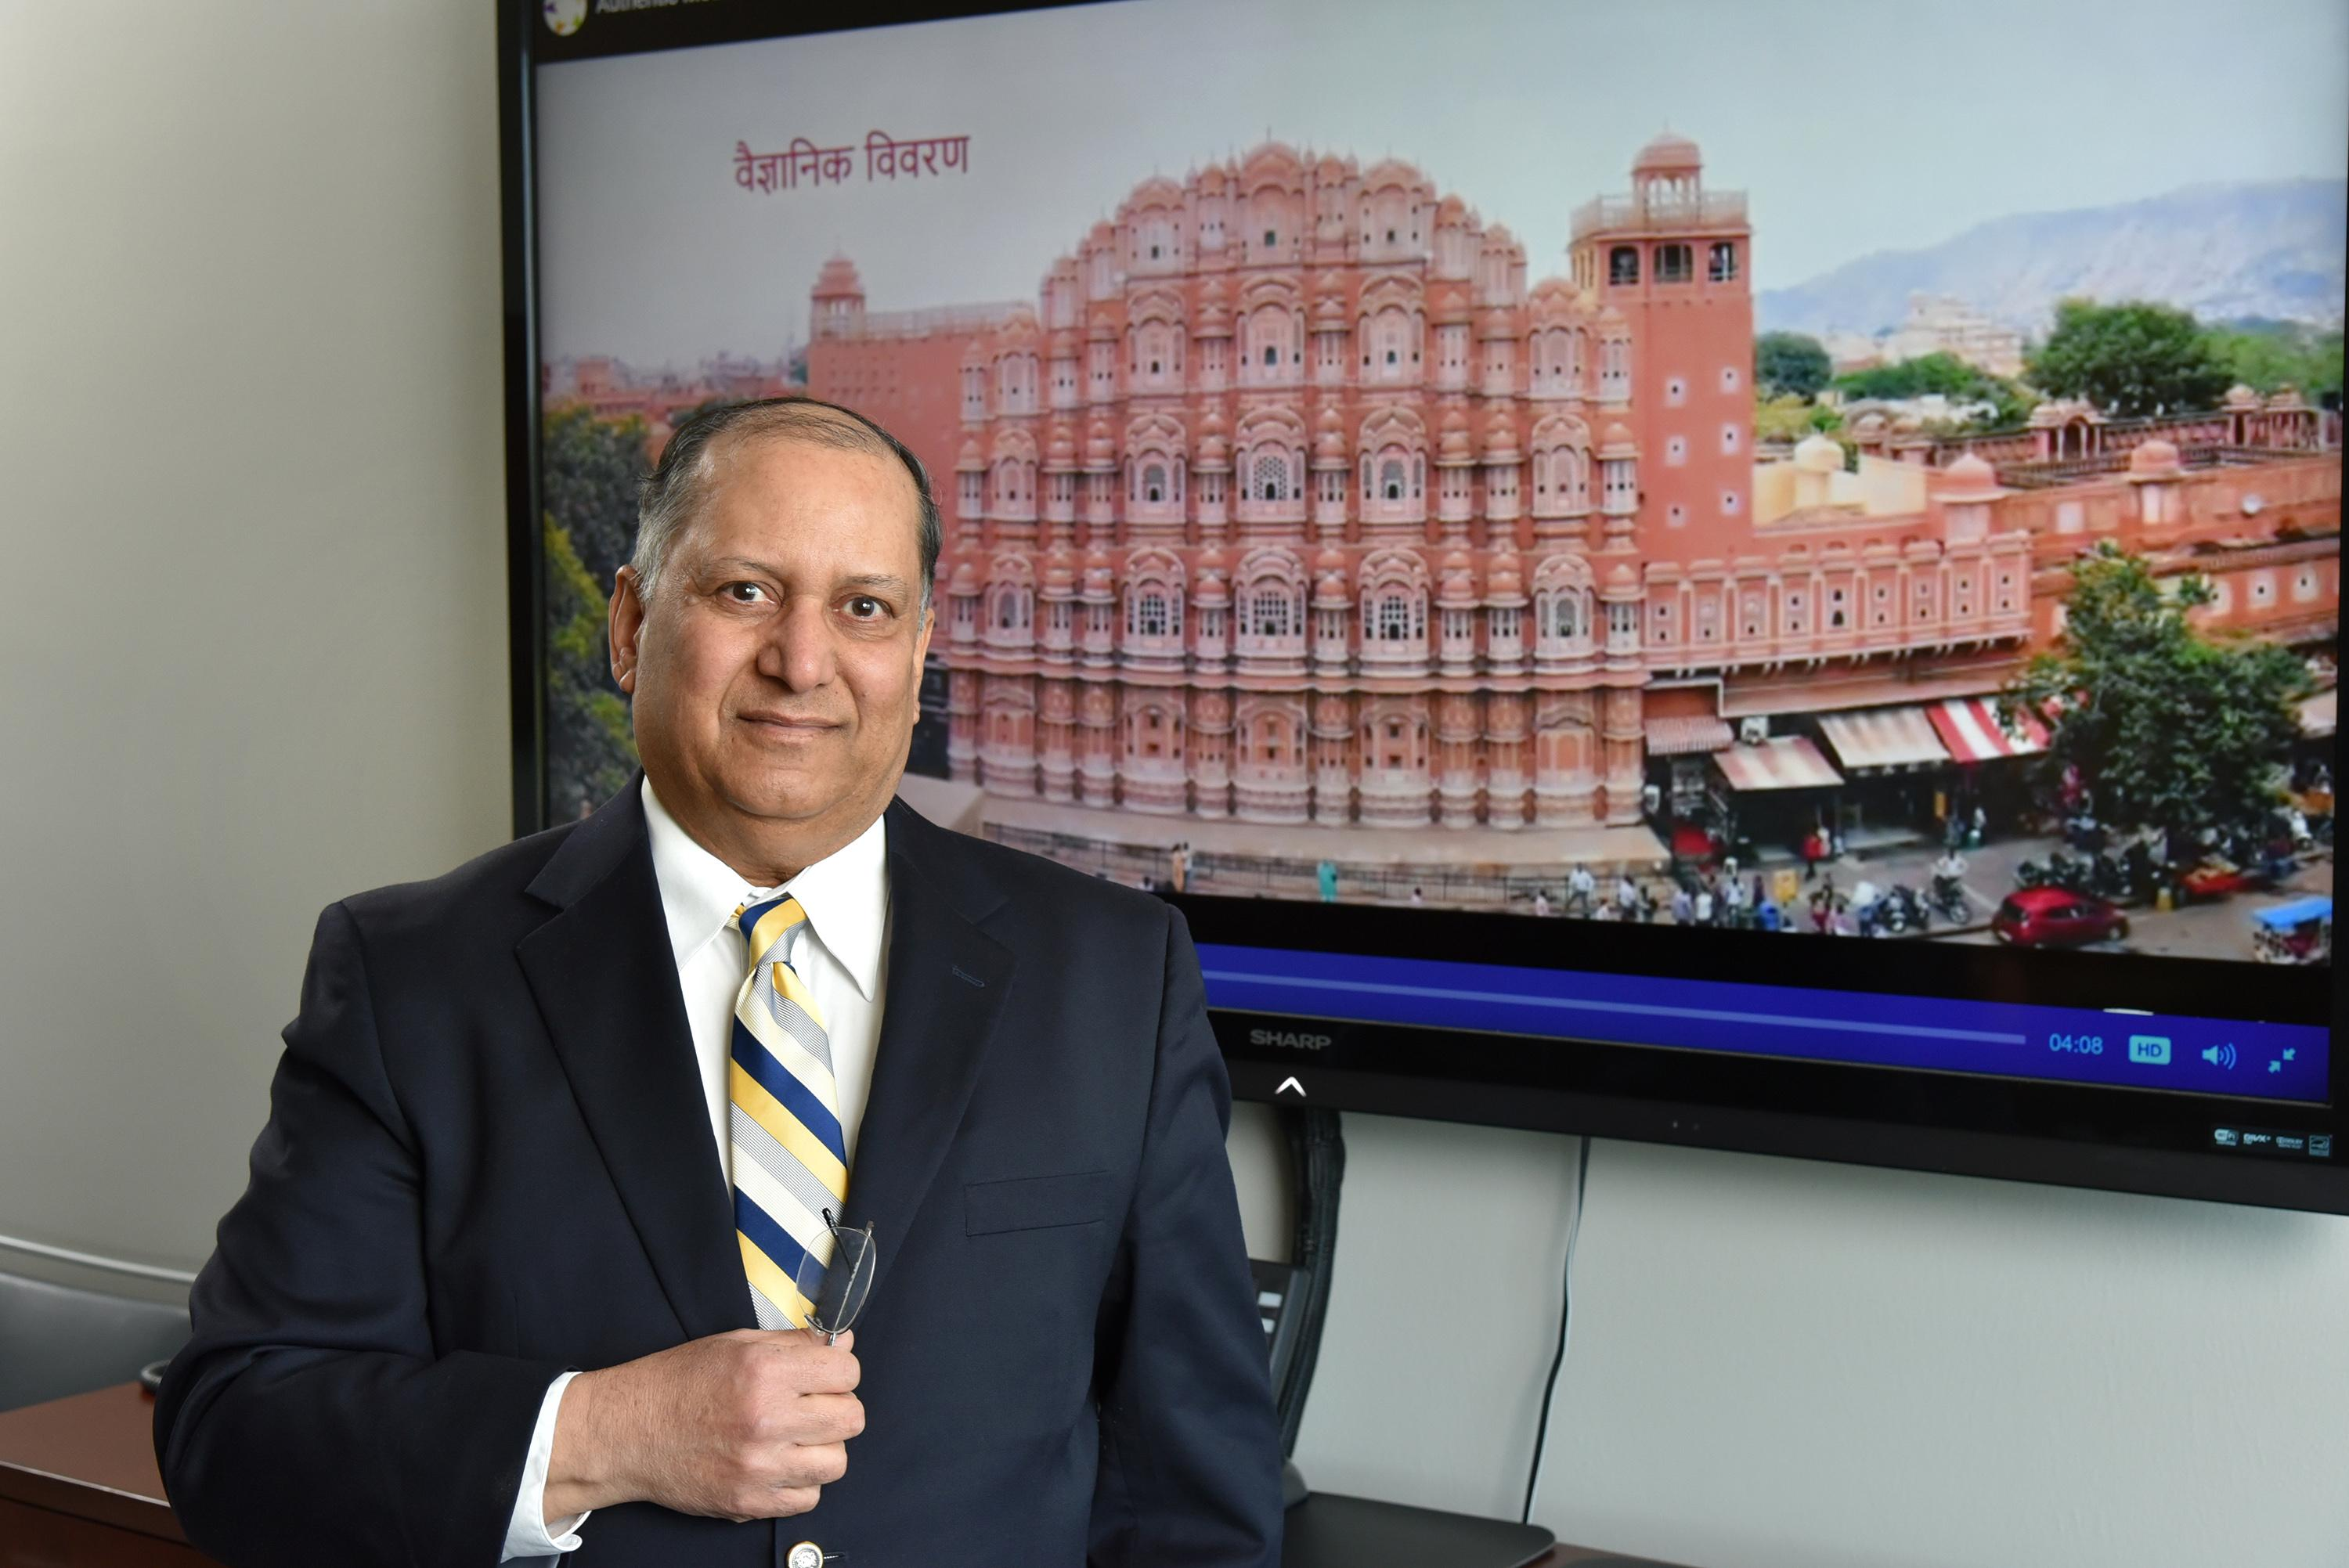 Alok Kumar with still of video he produced, this showing Hawa Mahal in Jaipur, a honeycomb structure built in 1799 that employs the Venturi effect for natural air conditioning